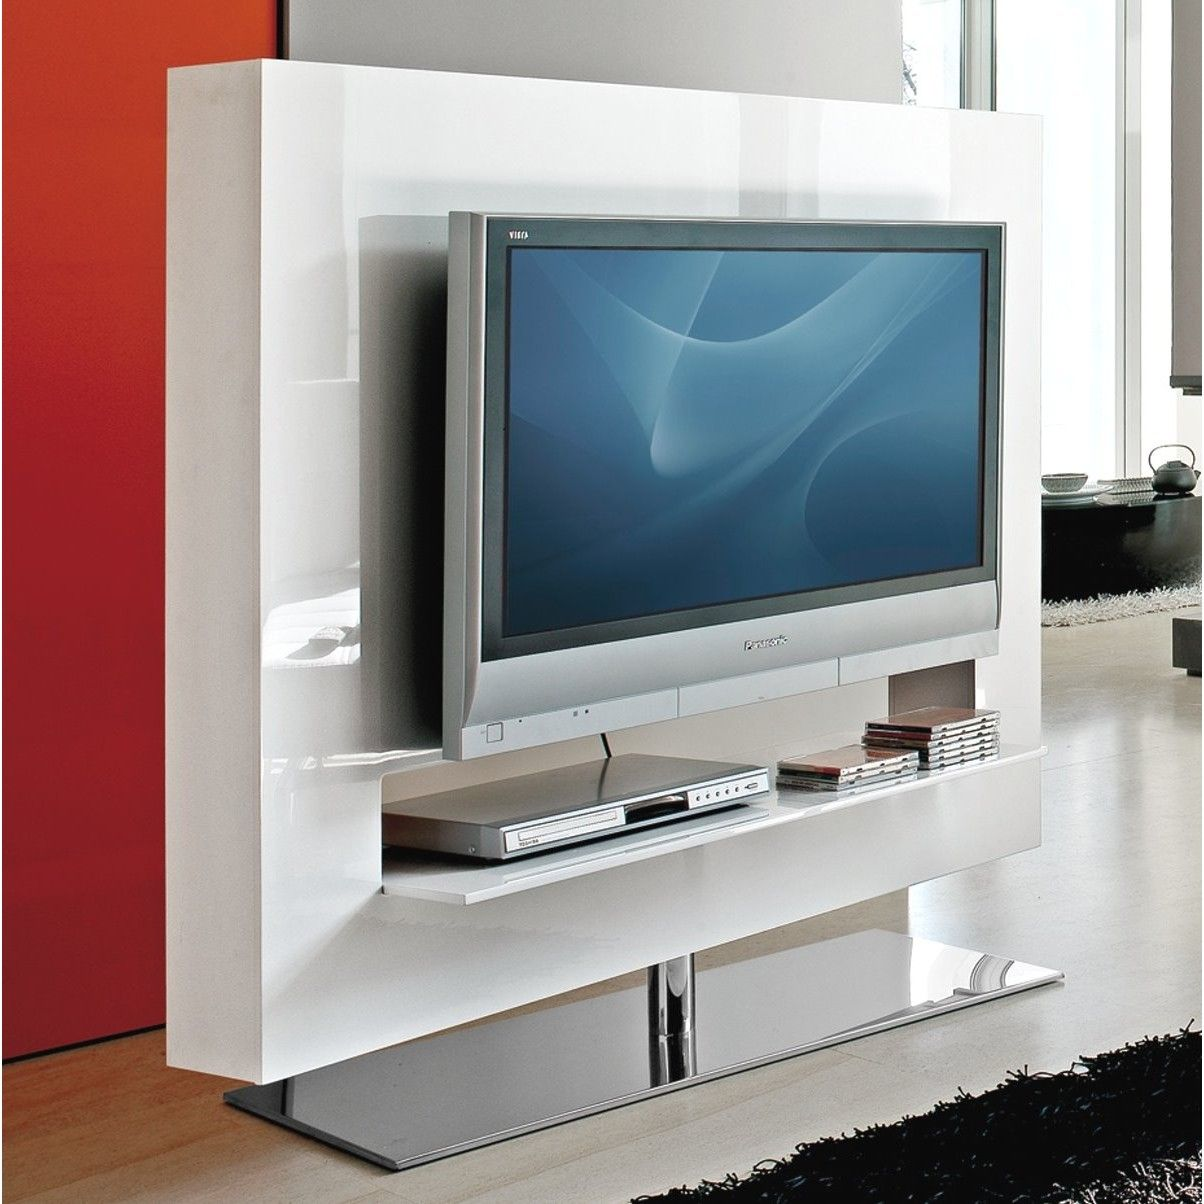 Panorama swivel TV stand - ARREDACLICK | Projects to Try | Pinterest ...